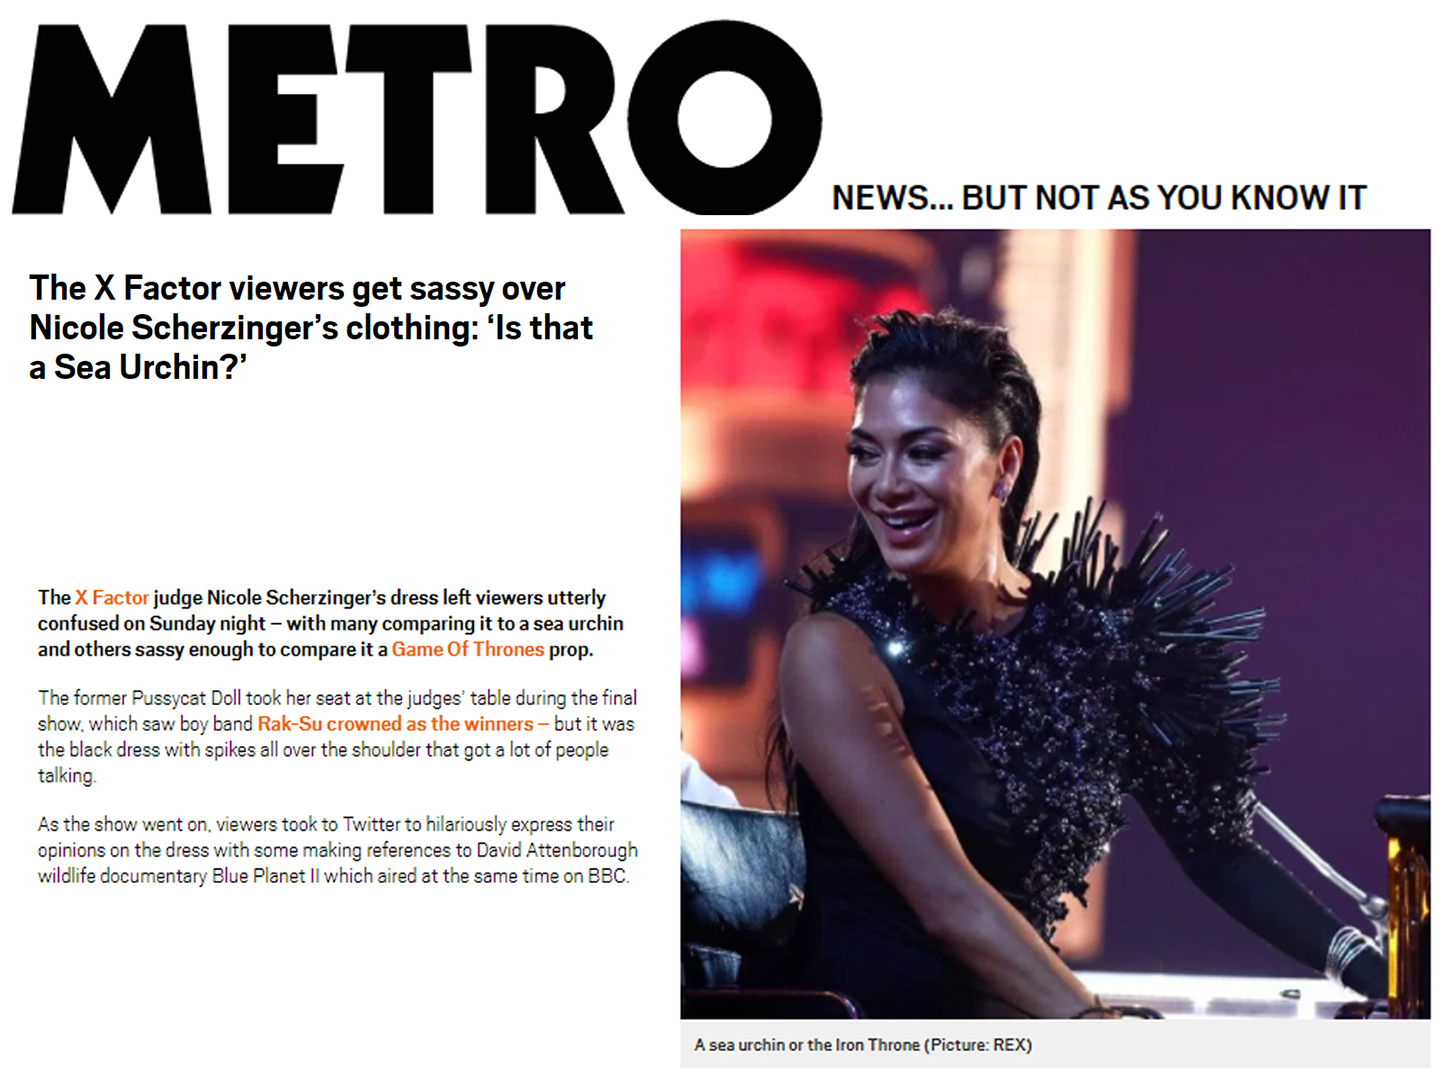 metro nicole scherzinger dresed by on aura tout vu x factor